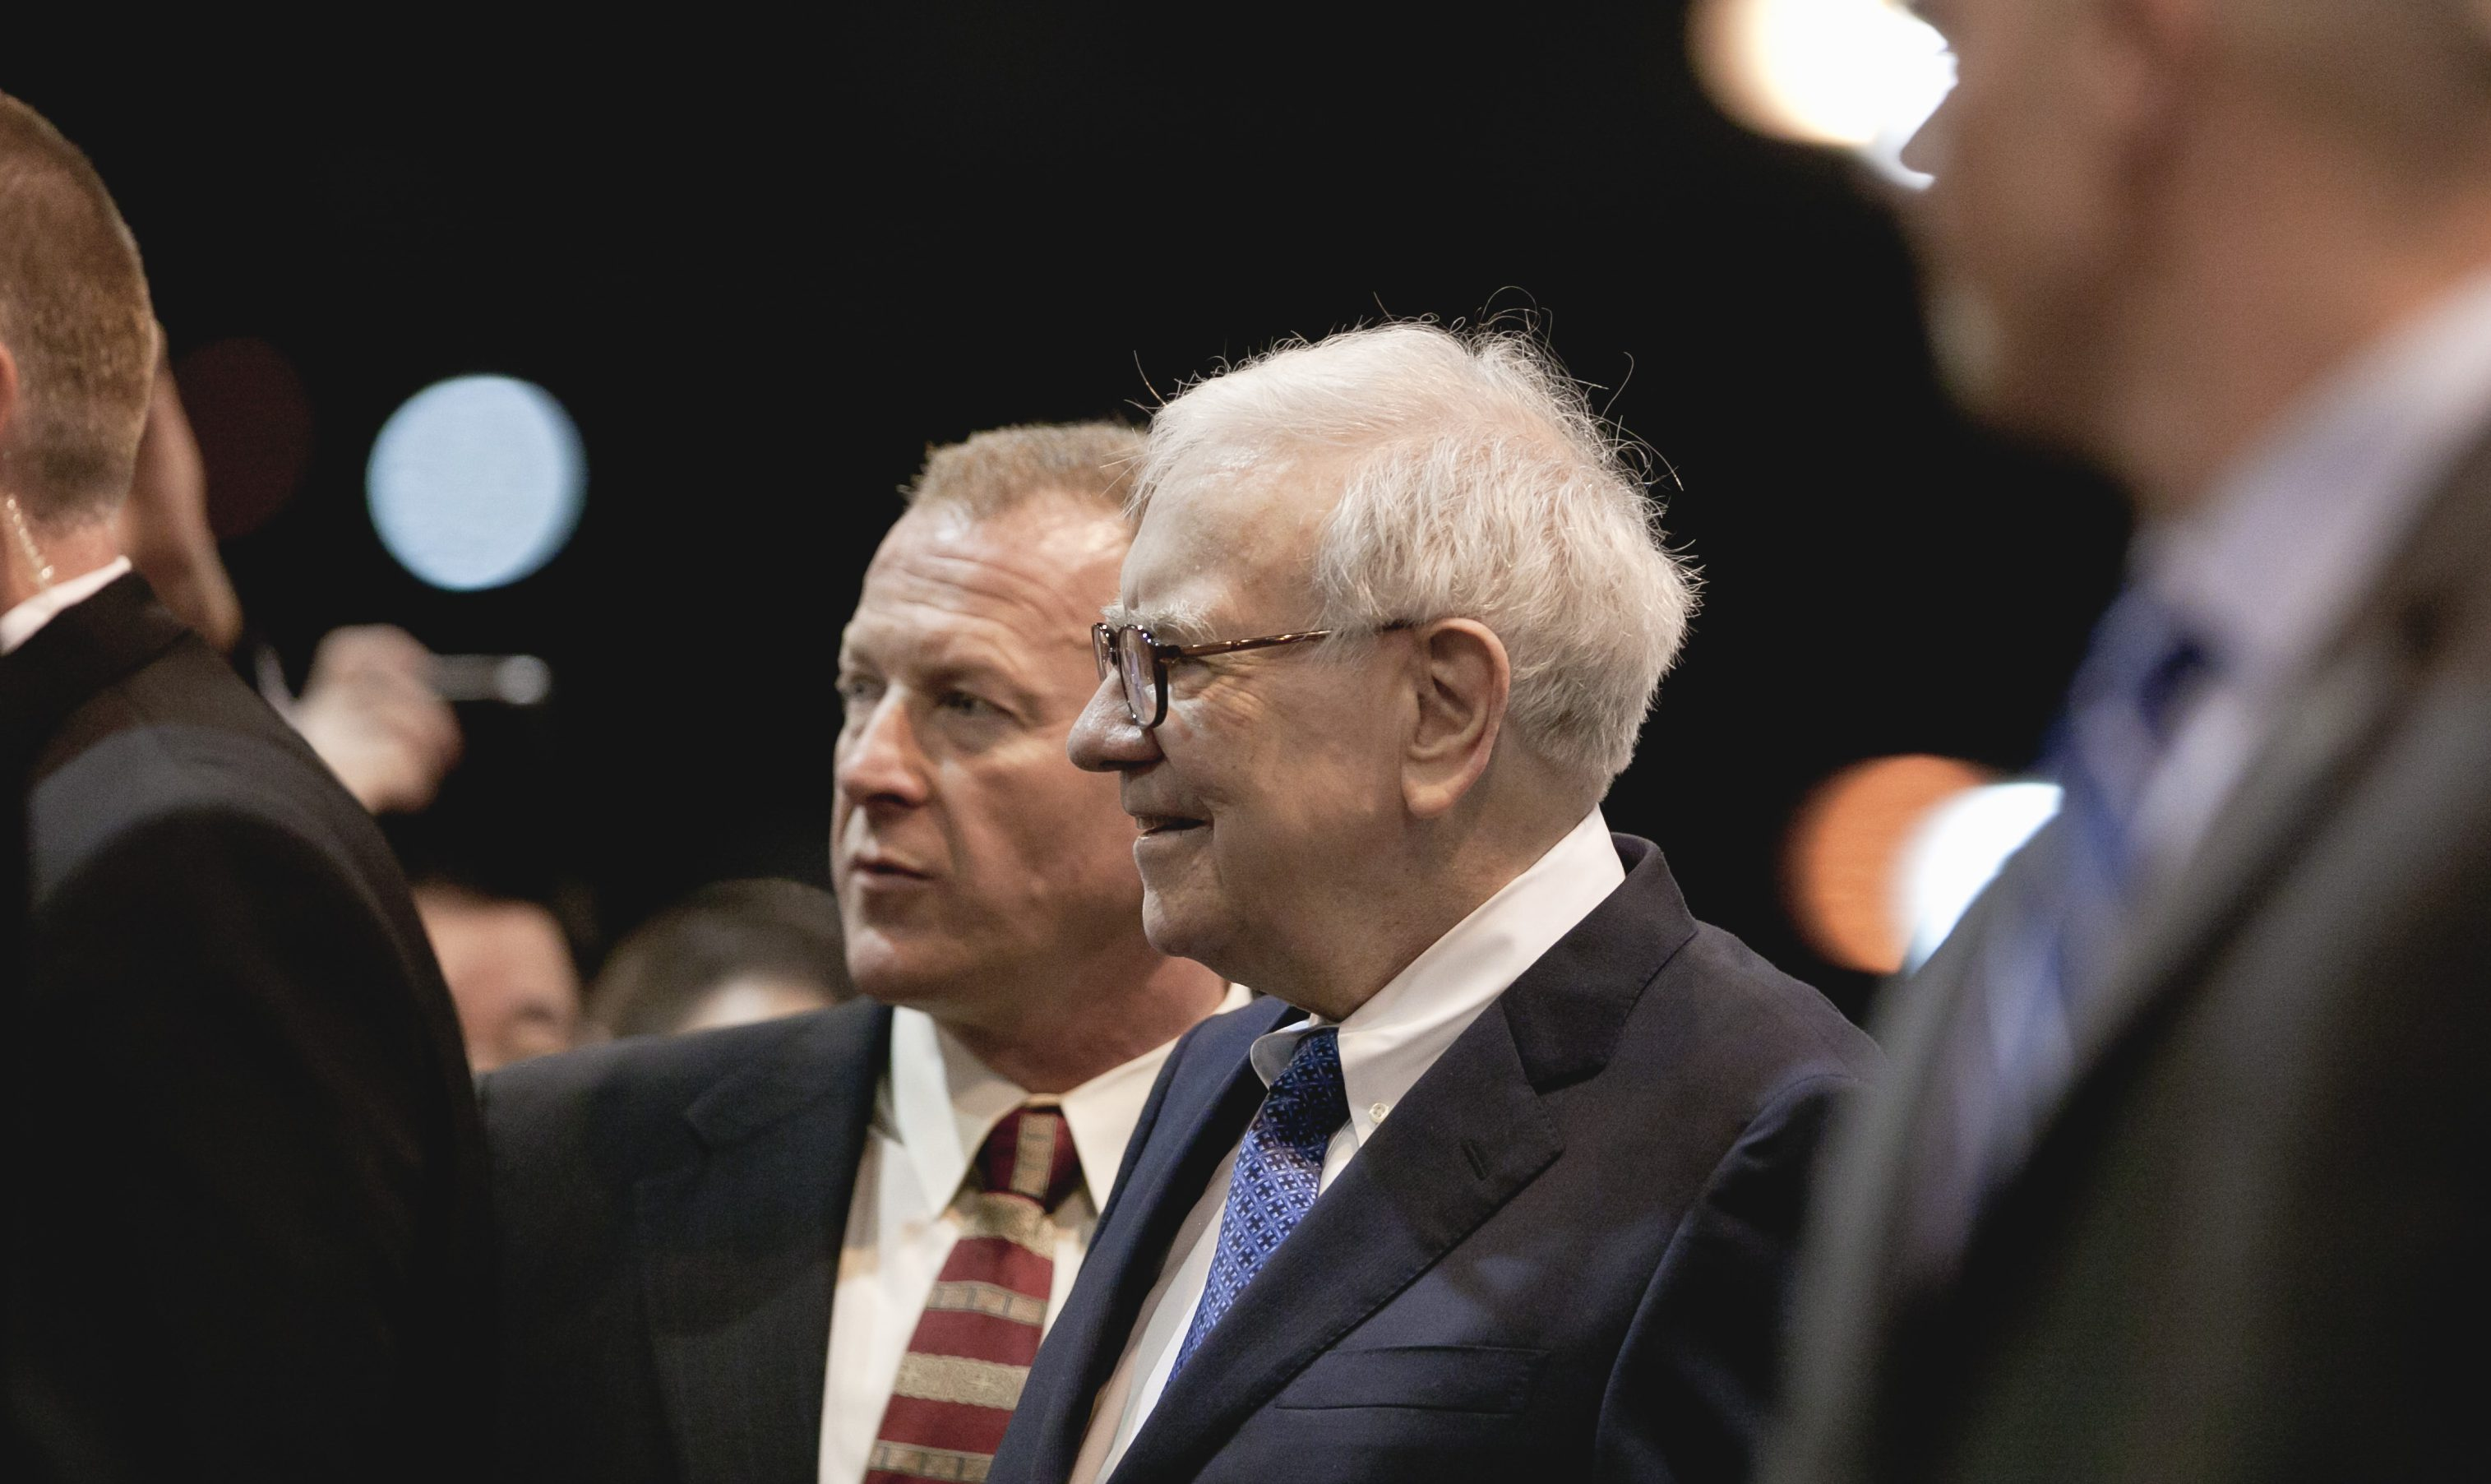 Warren Buffett, chairman and CEO of Berkshire Hathaway, center right, tours the exhibitor's floor with his chief of security Dan Clark, prior to holding the Berkshire Hathaway shareholders meeting in Omaha, Neb., Saturday, May 5, 2012. Berkshire Hathaway is holding it's annual shareholders meeting this weekend. (AP Photo/Nati Harnik)